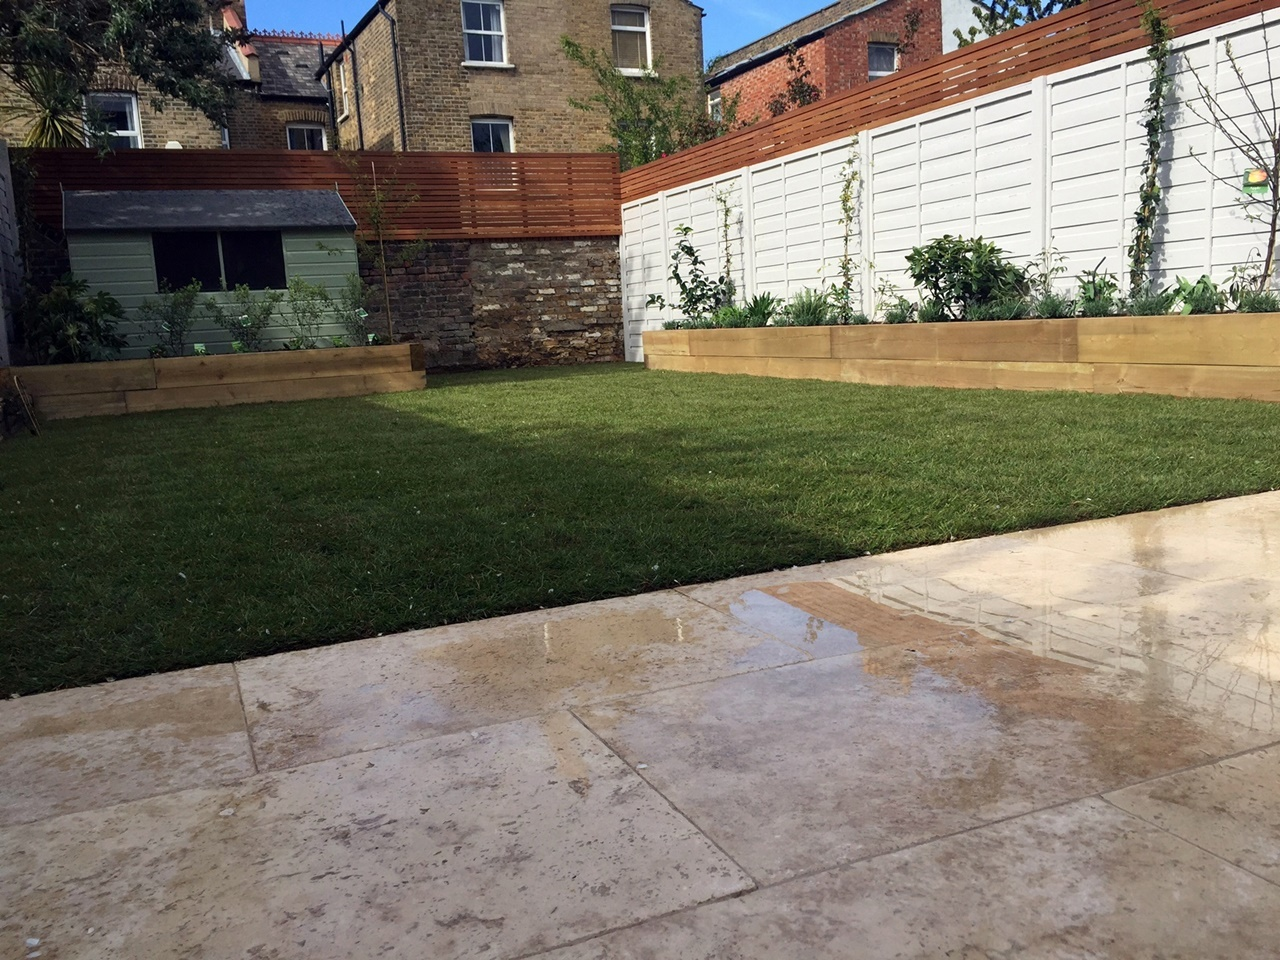 Hardwood privacy screen travertine paving fencing painted planting grass London Dulwich Battersea Clapham